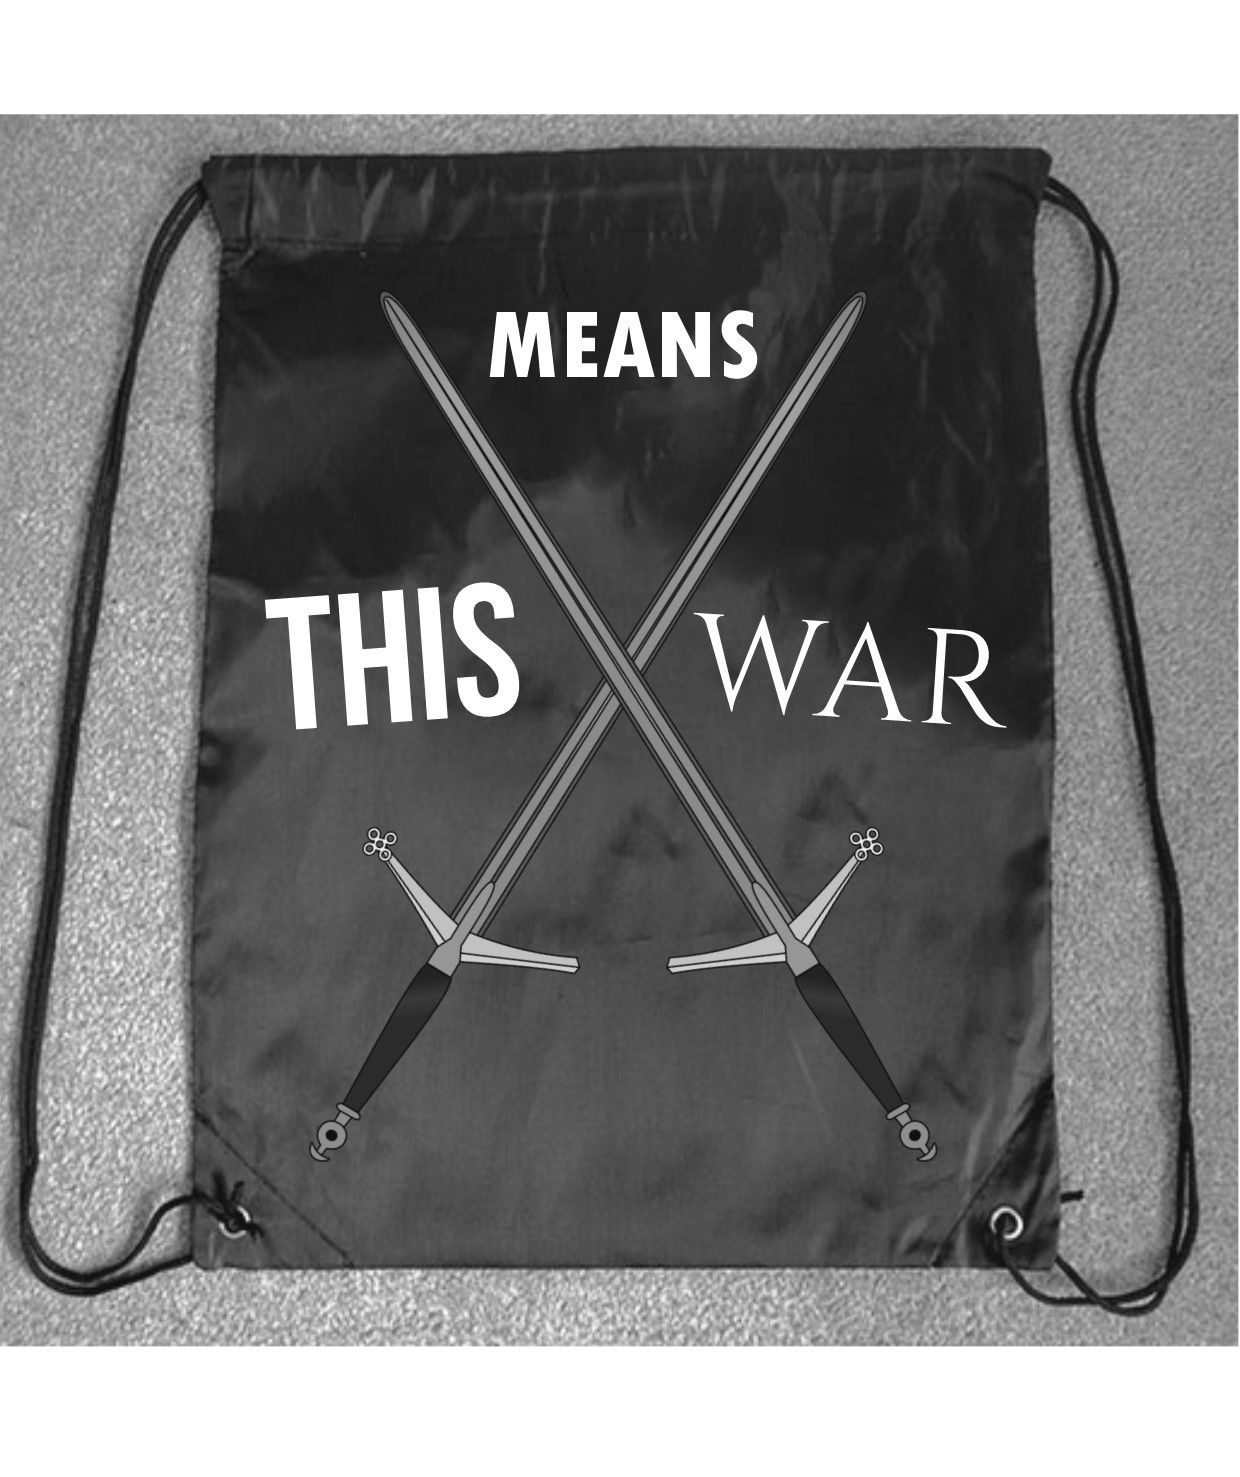 83864006e4 This Means War Motivational Fun Gym Bag Printed Drawstring Fitness Sport  Workout – Pendred Printing